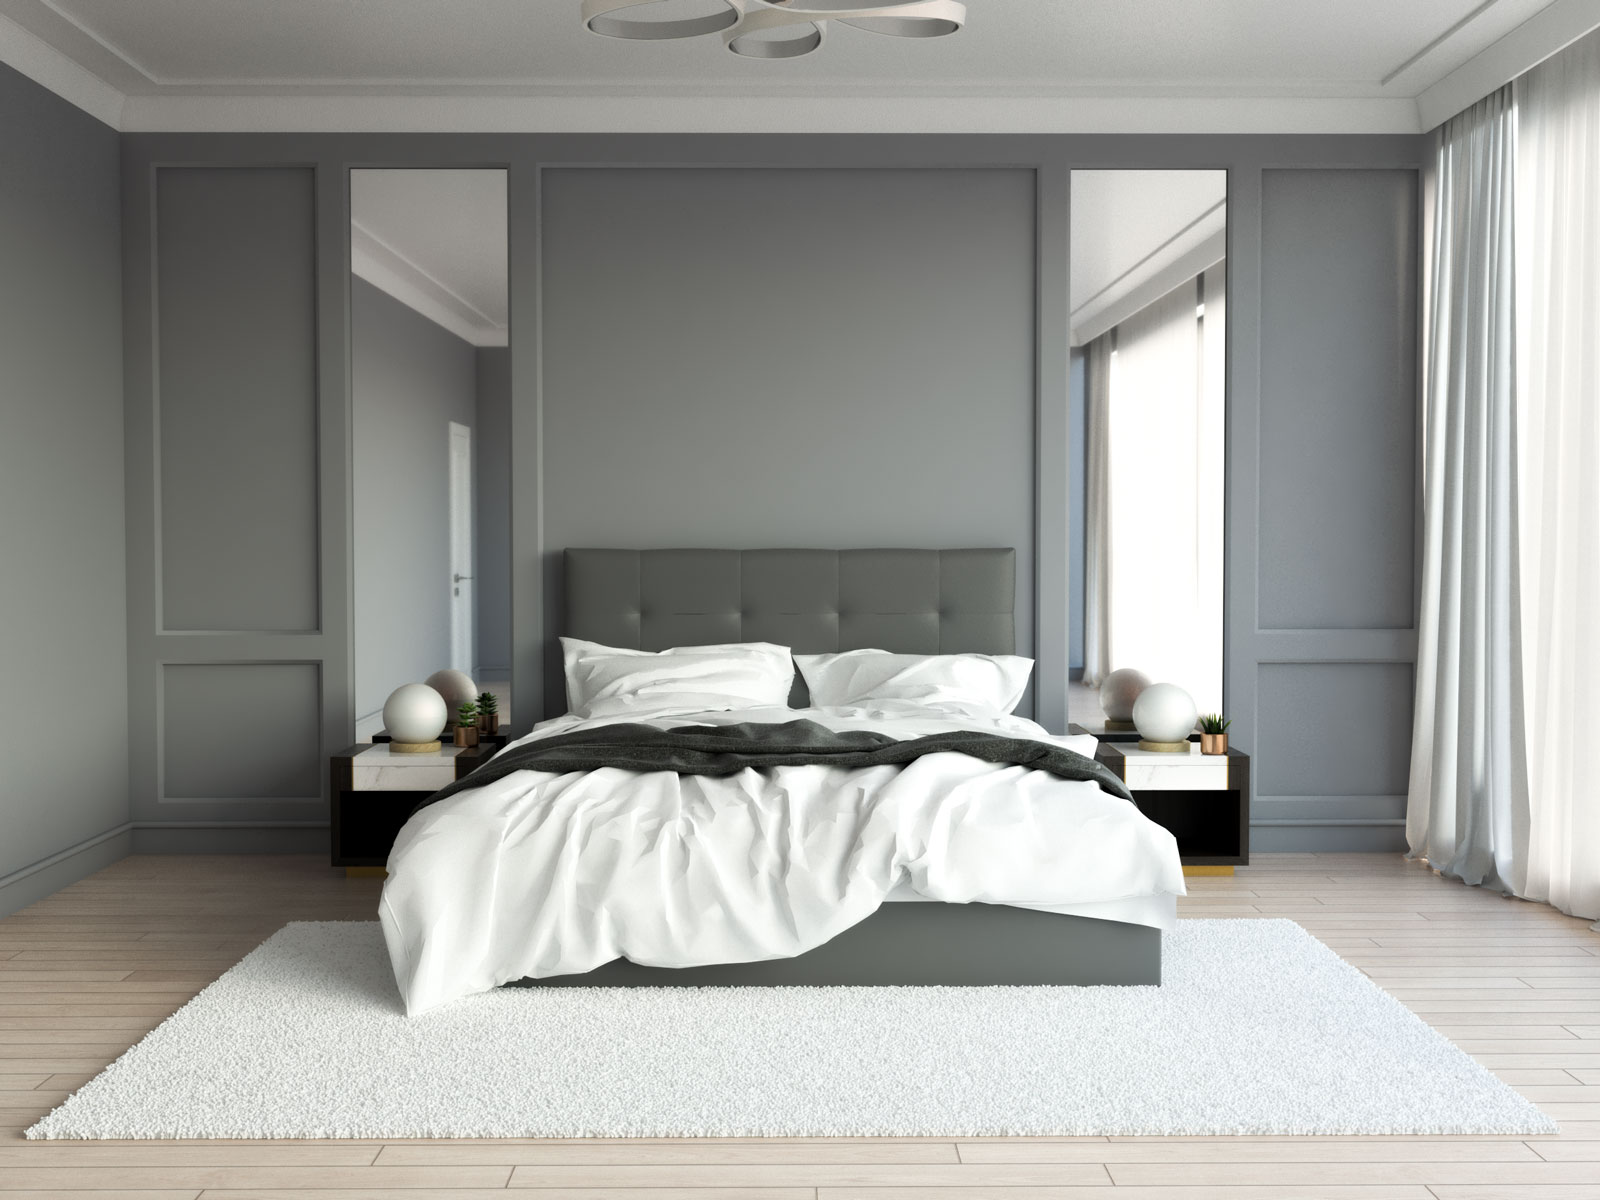 Shaggy white rug with gray walls